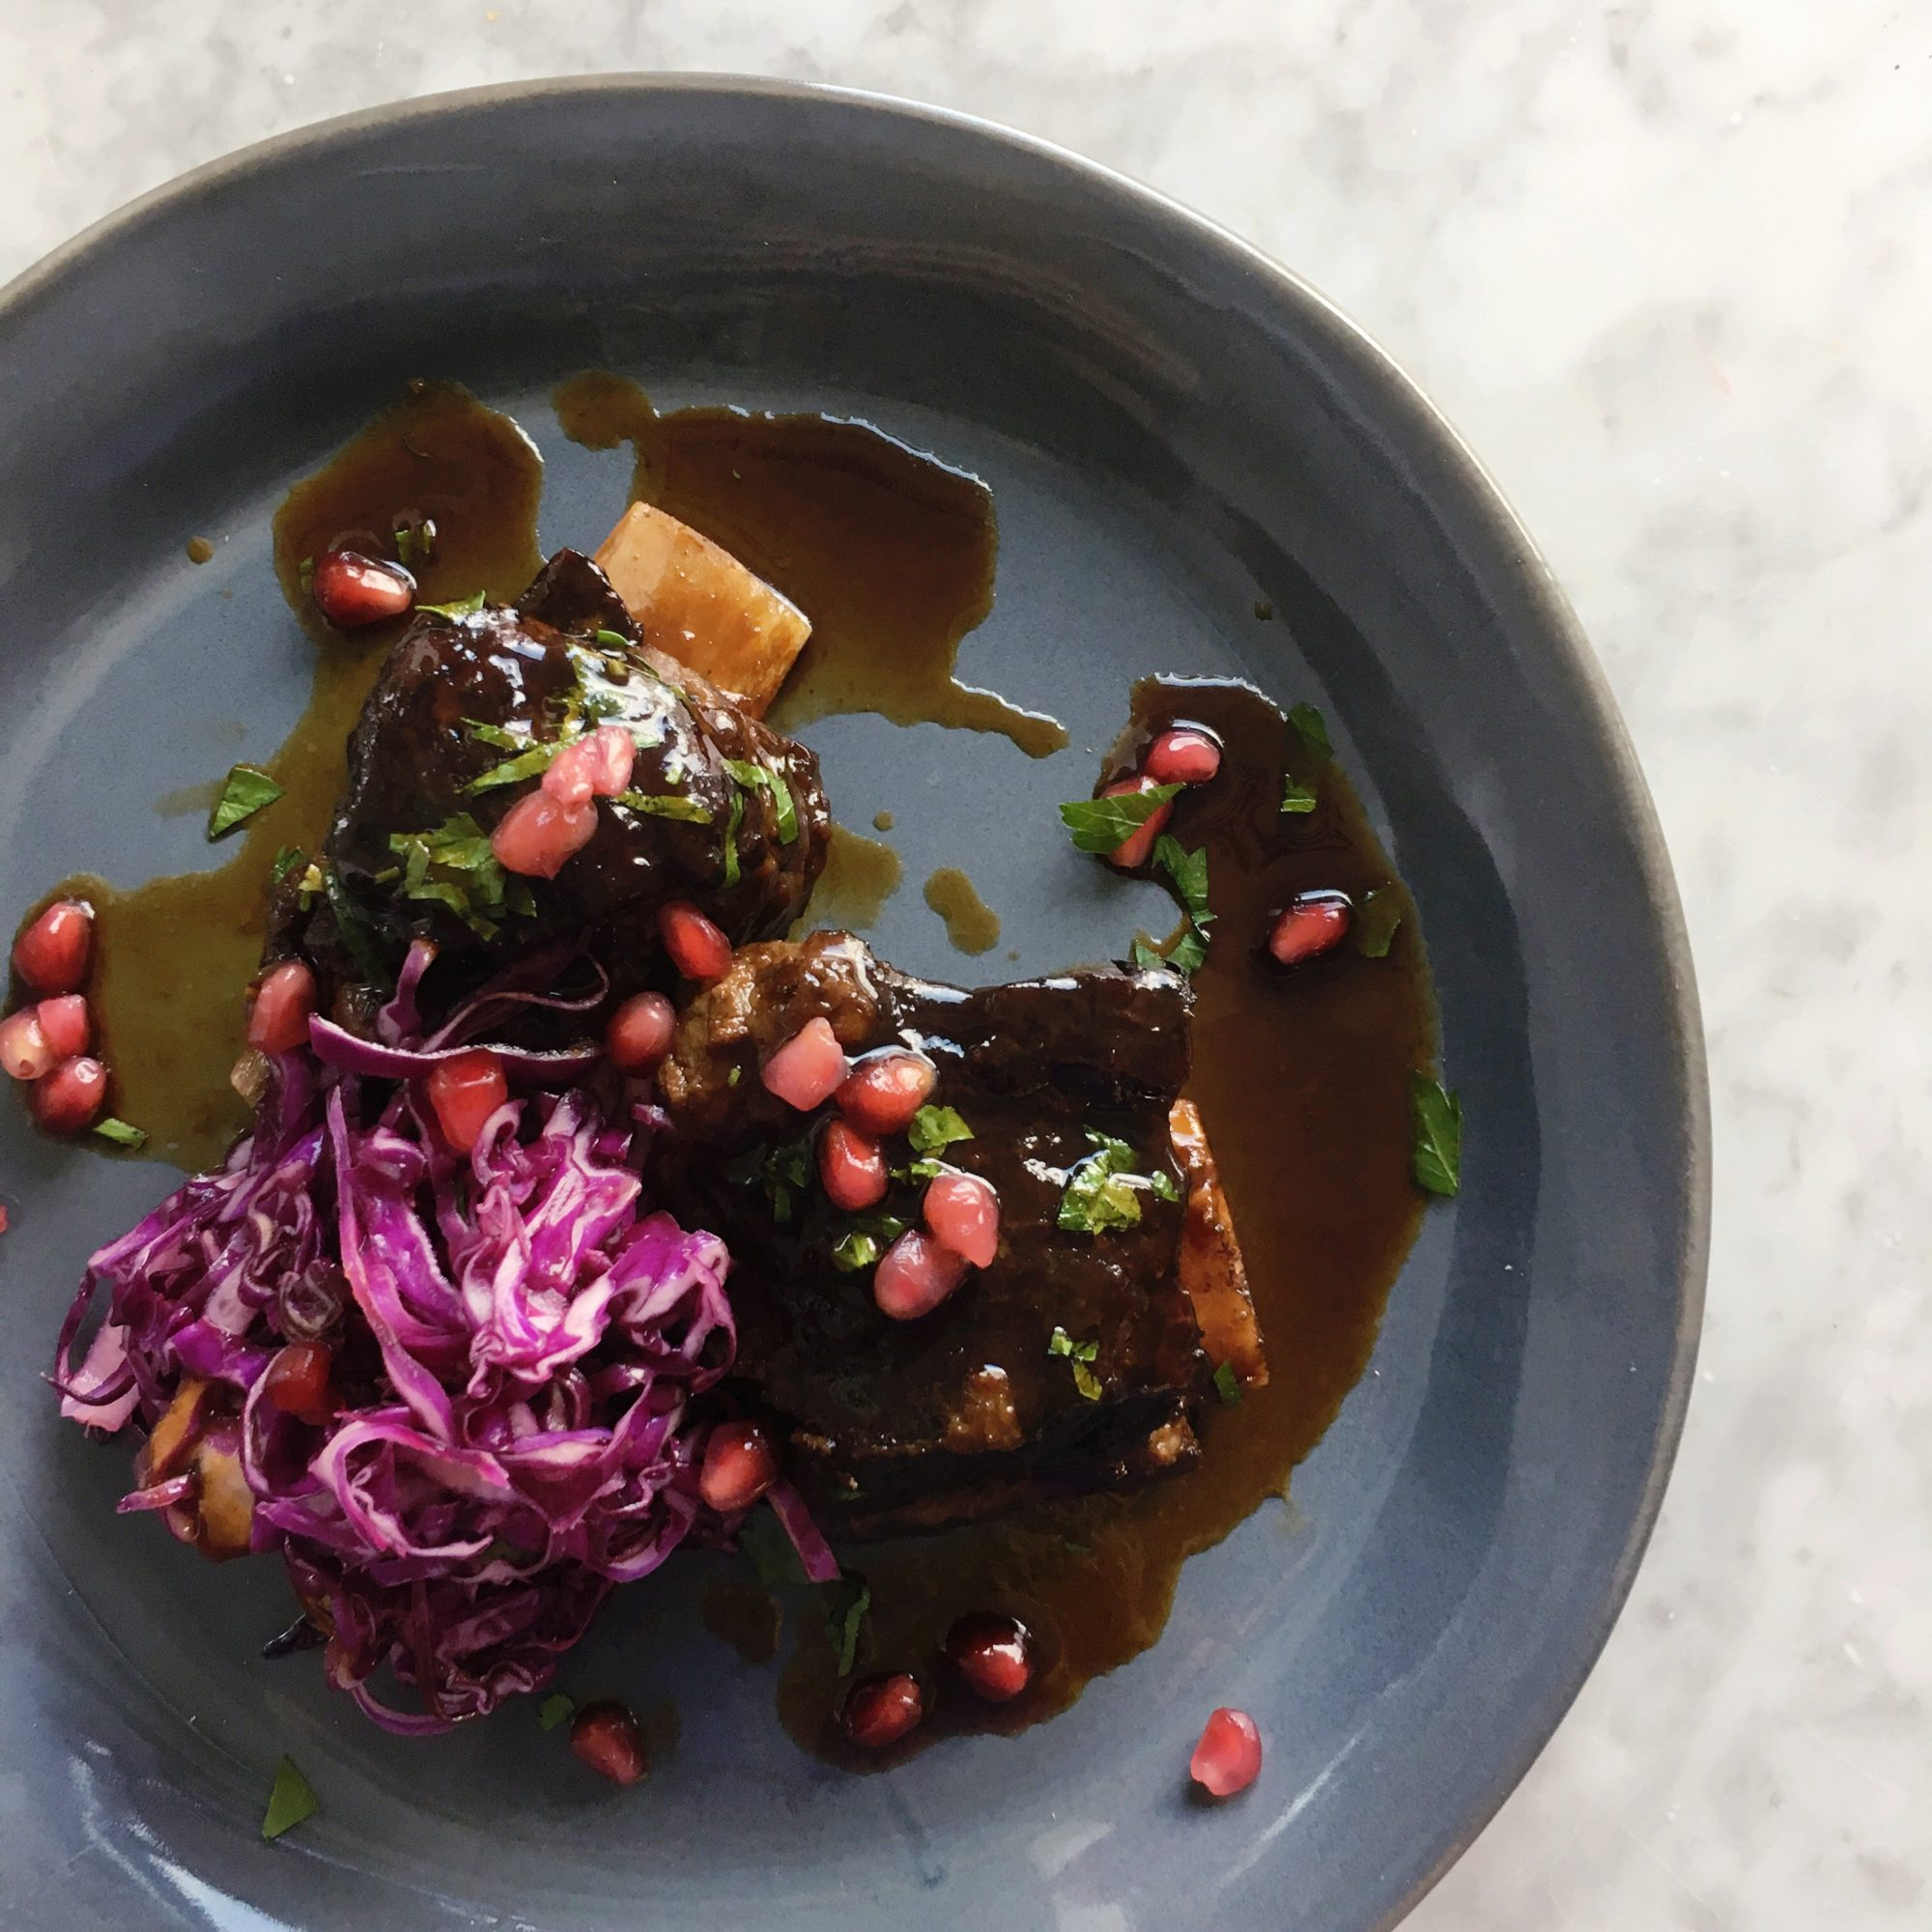 Braised Short Ribs with Savory Red Cabbage Slaw Image